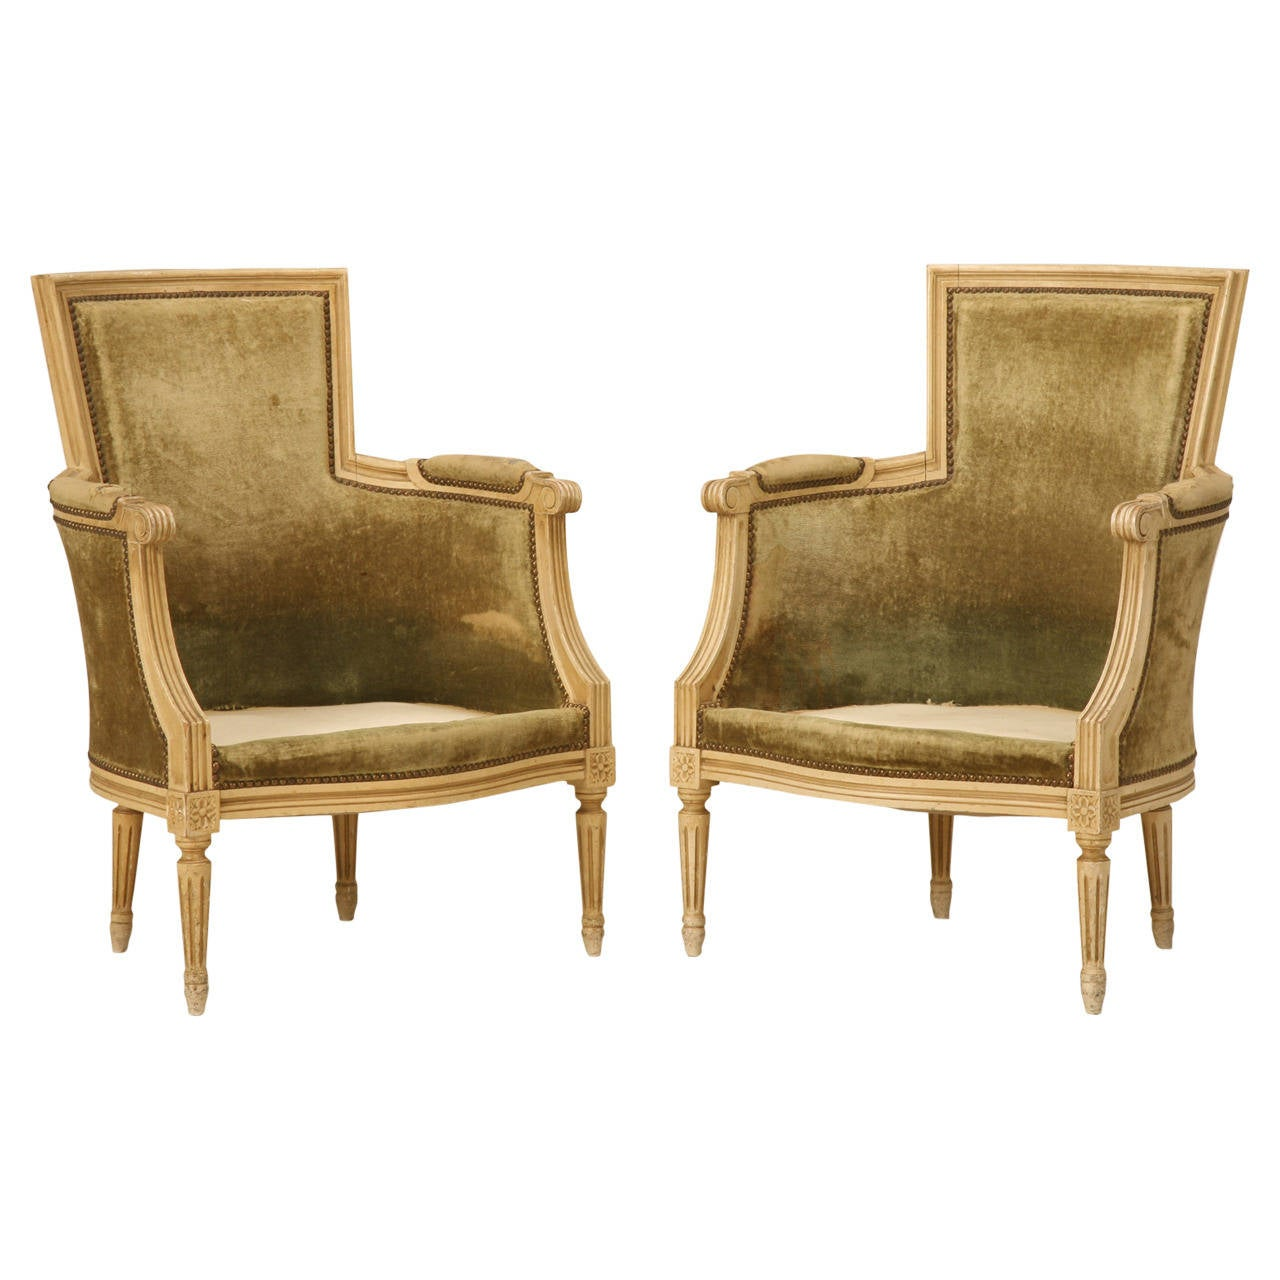 Louis XVI Style Bergere Chairs in Original Paint For Sale